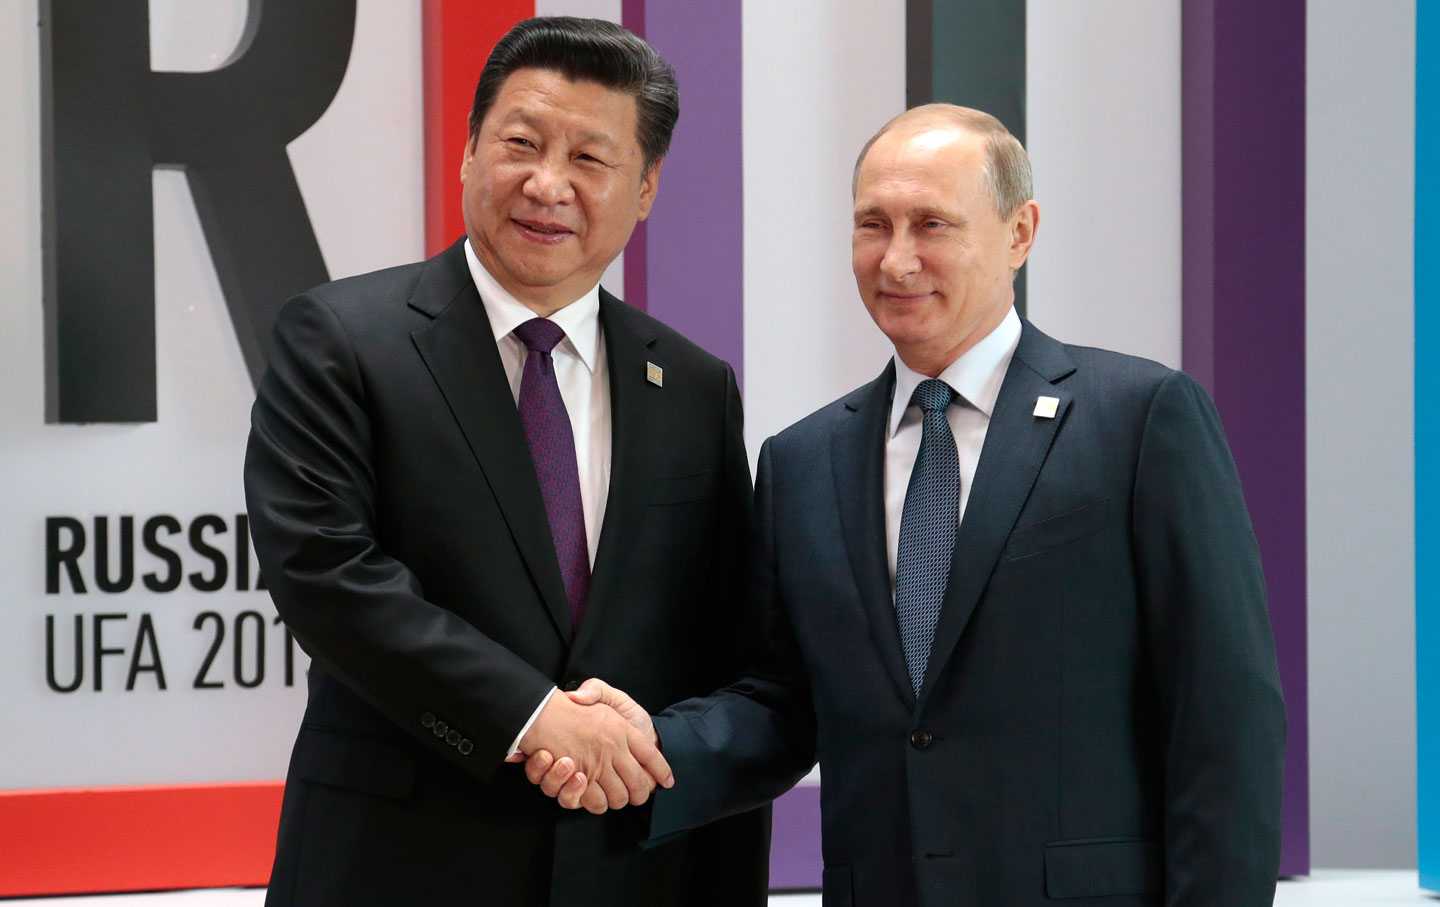 Presidents Putin and Jinping